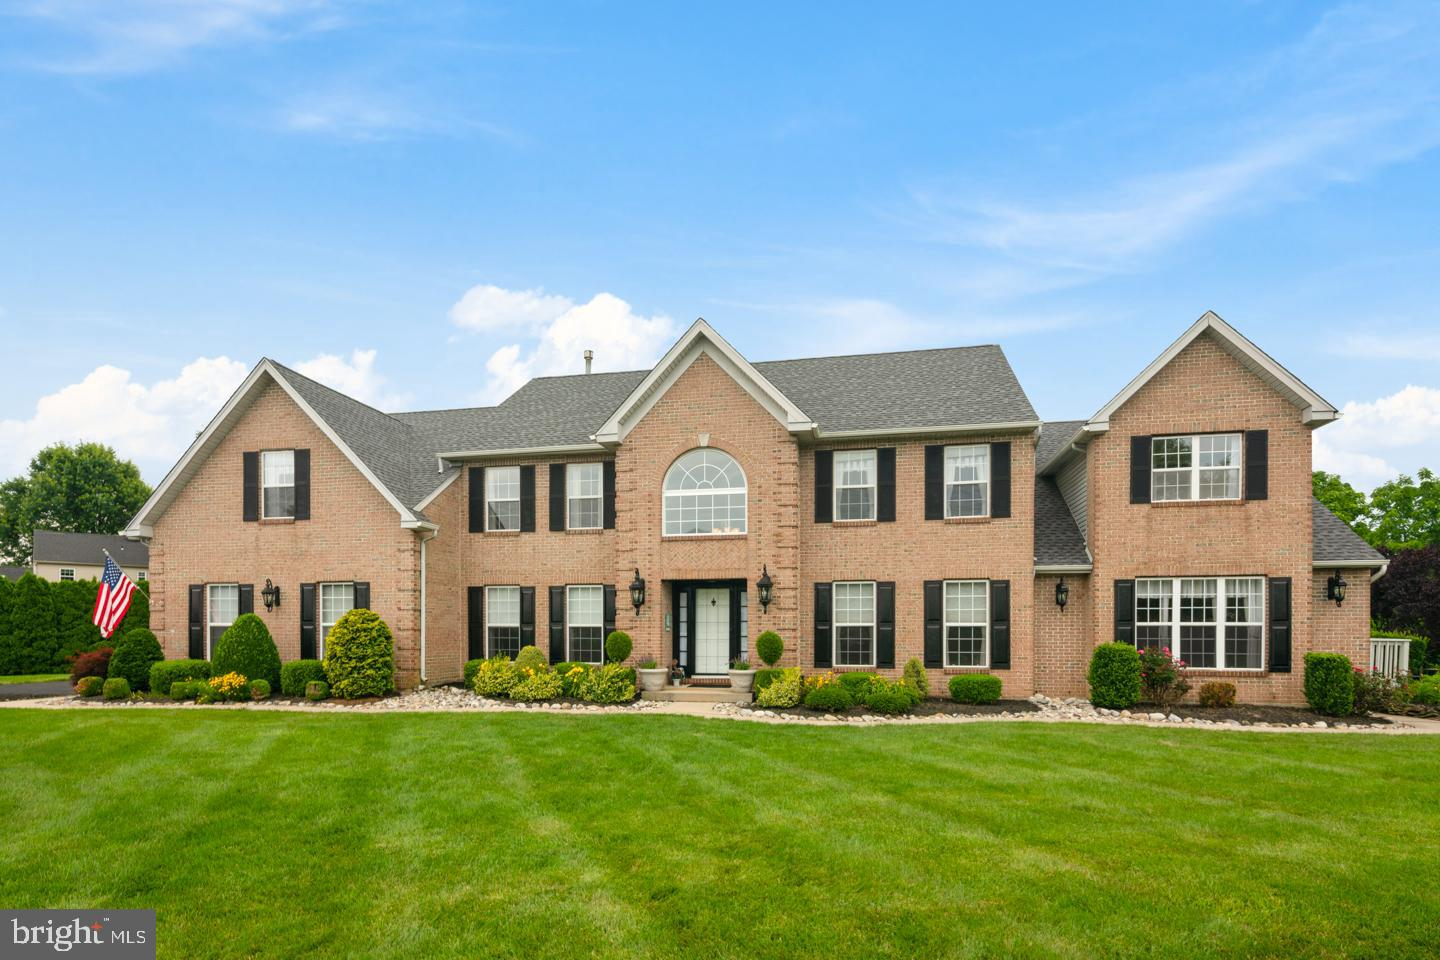 762 GRISSOM DRIVE, LANSDALE, PA 19446